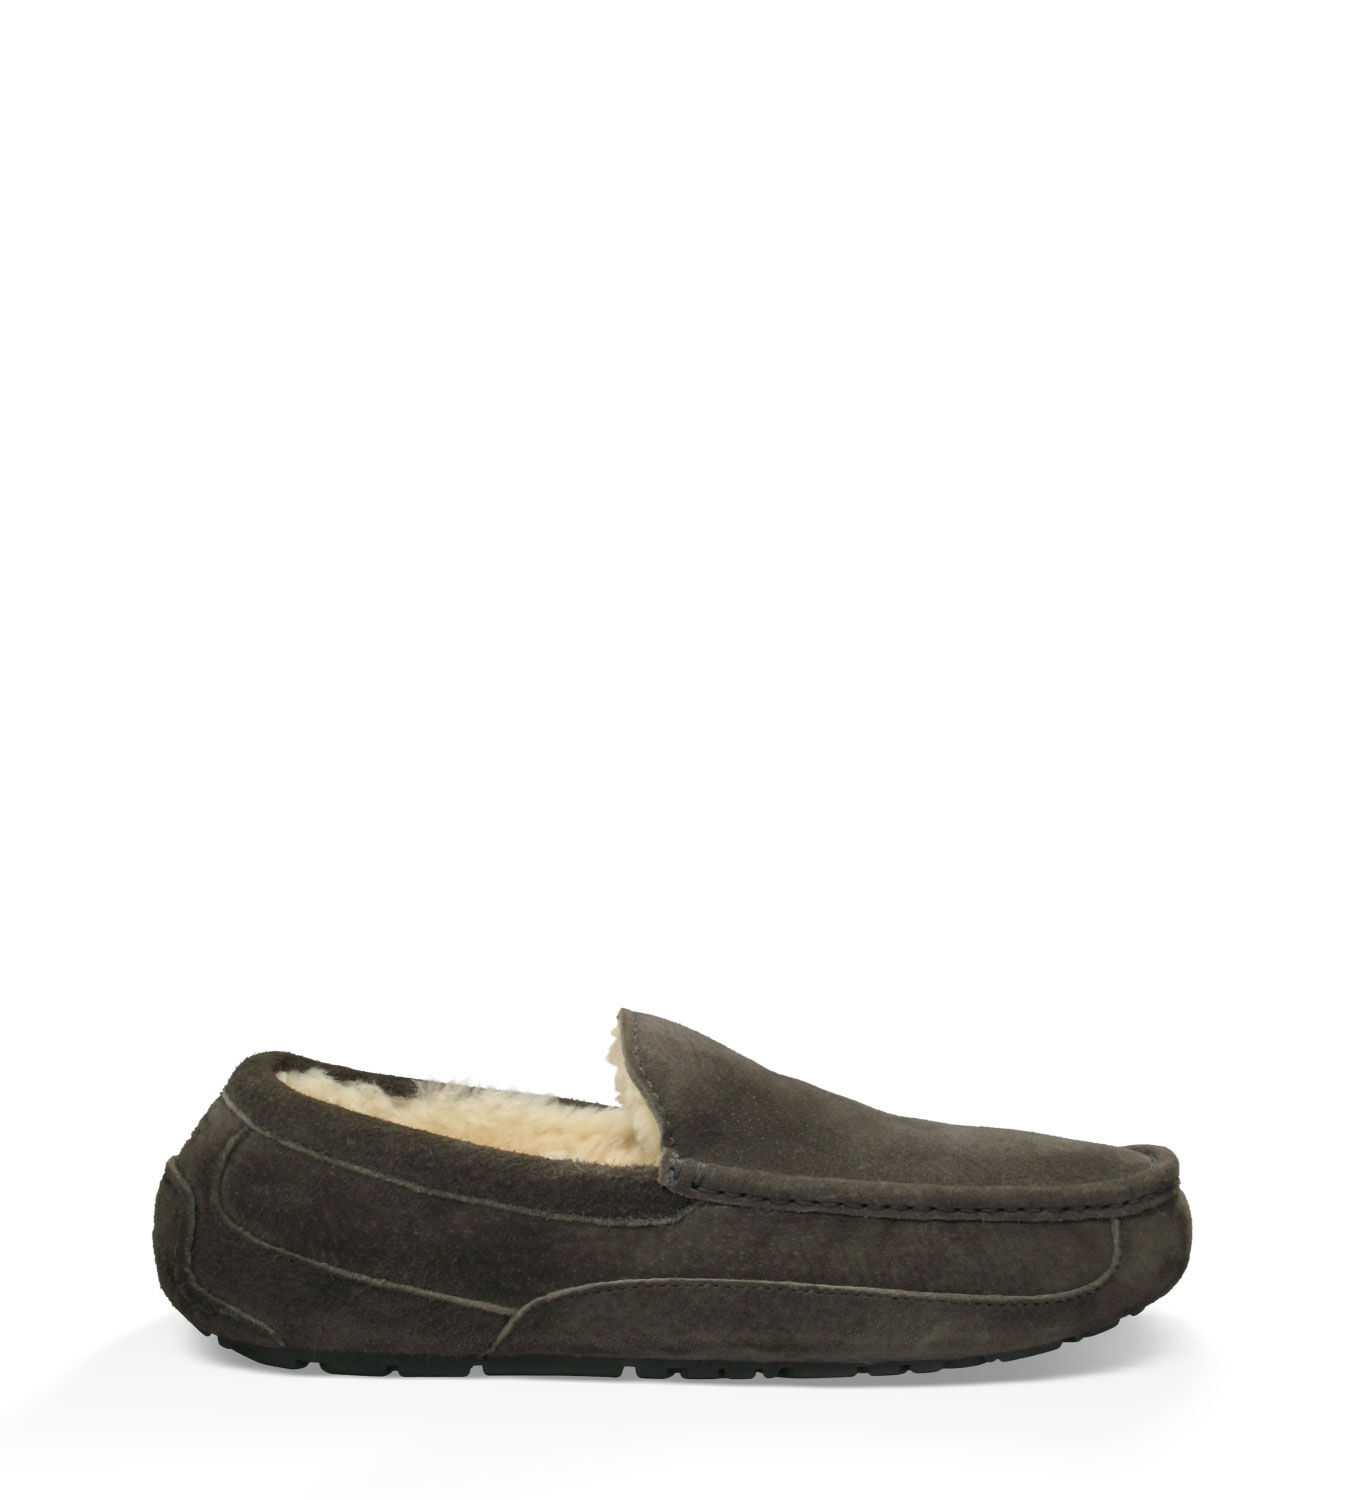 ugg slippers for men size 8 nz